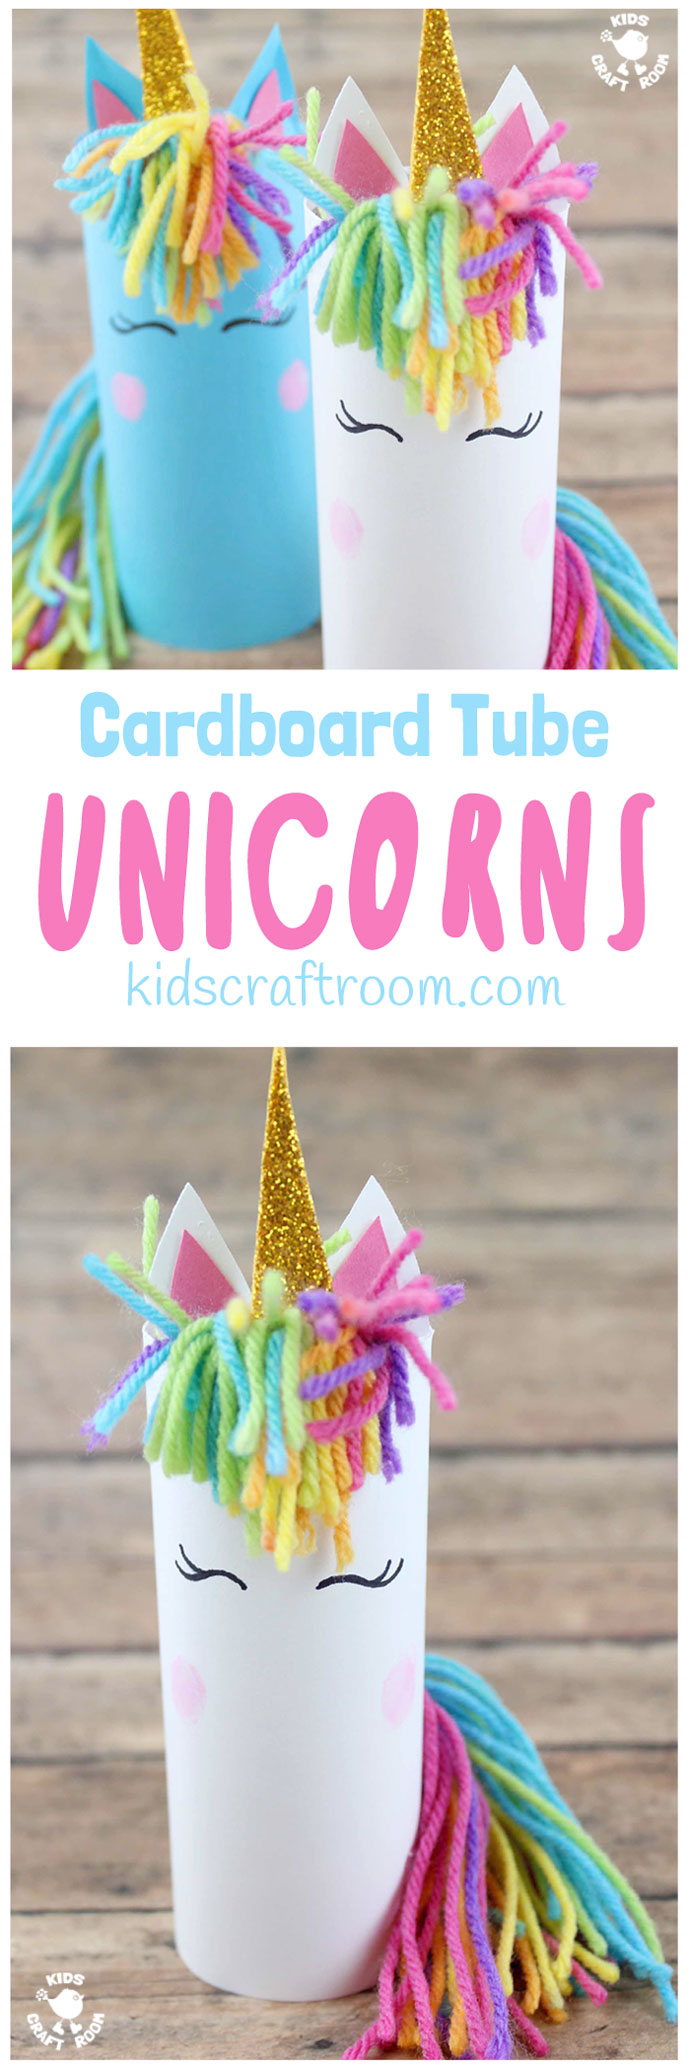 Cardboard-Tube-Unicorn-Craft-pin